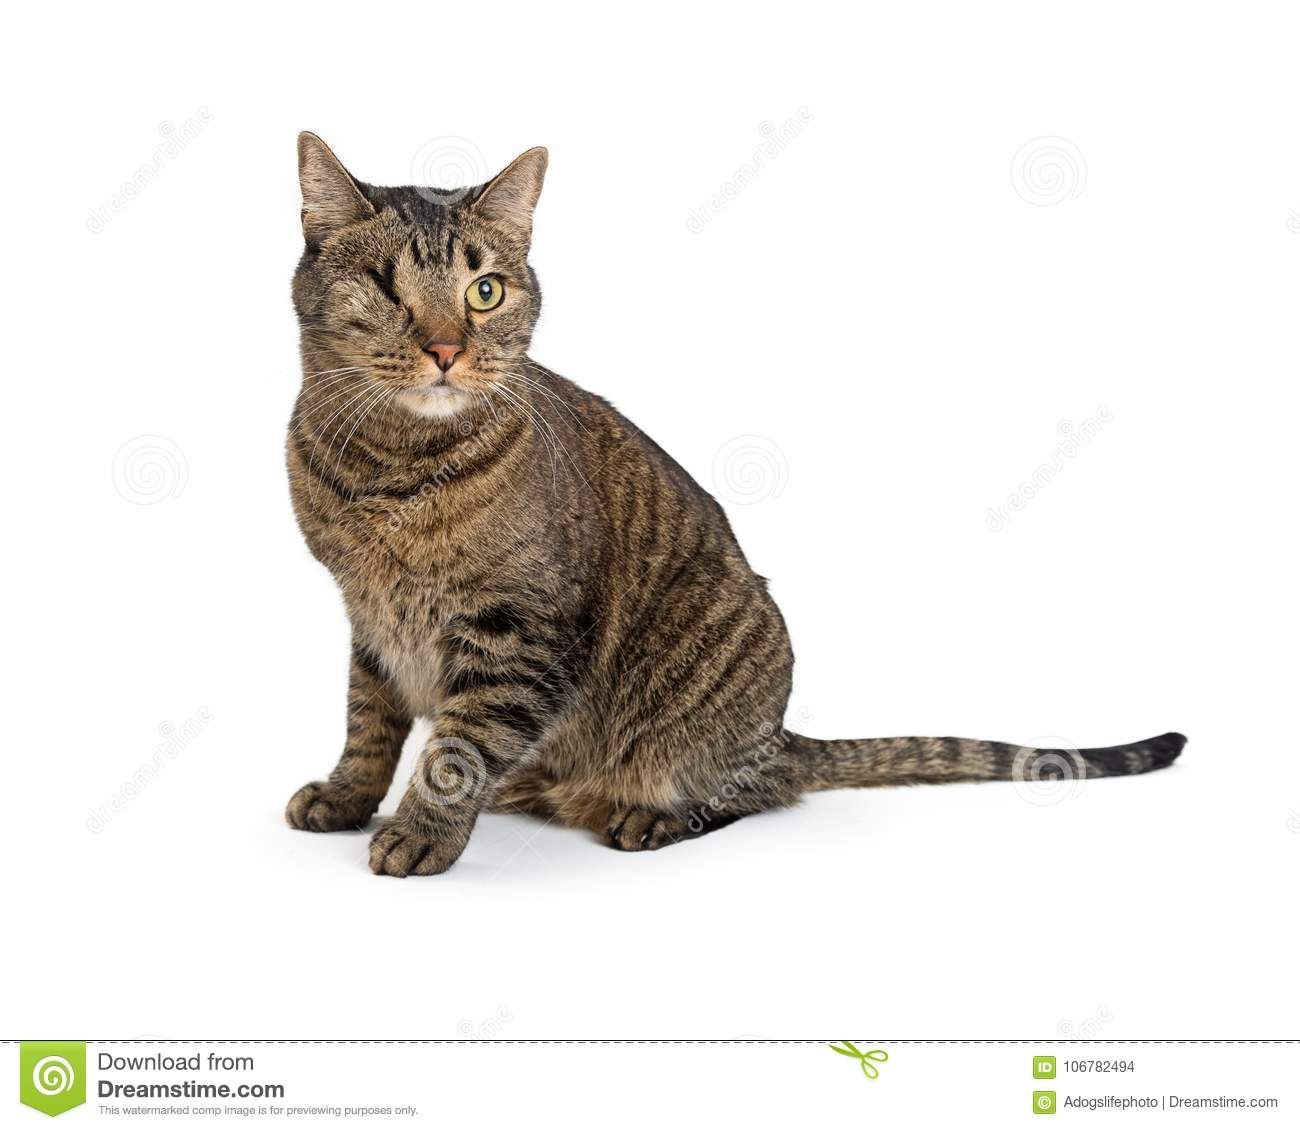 Tabby Cat With Missing Eye